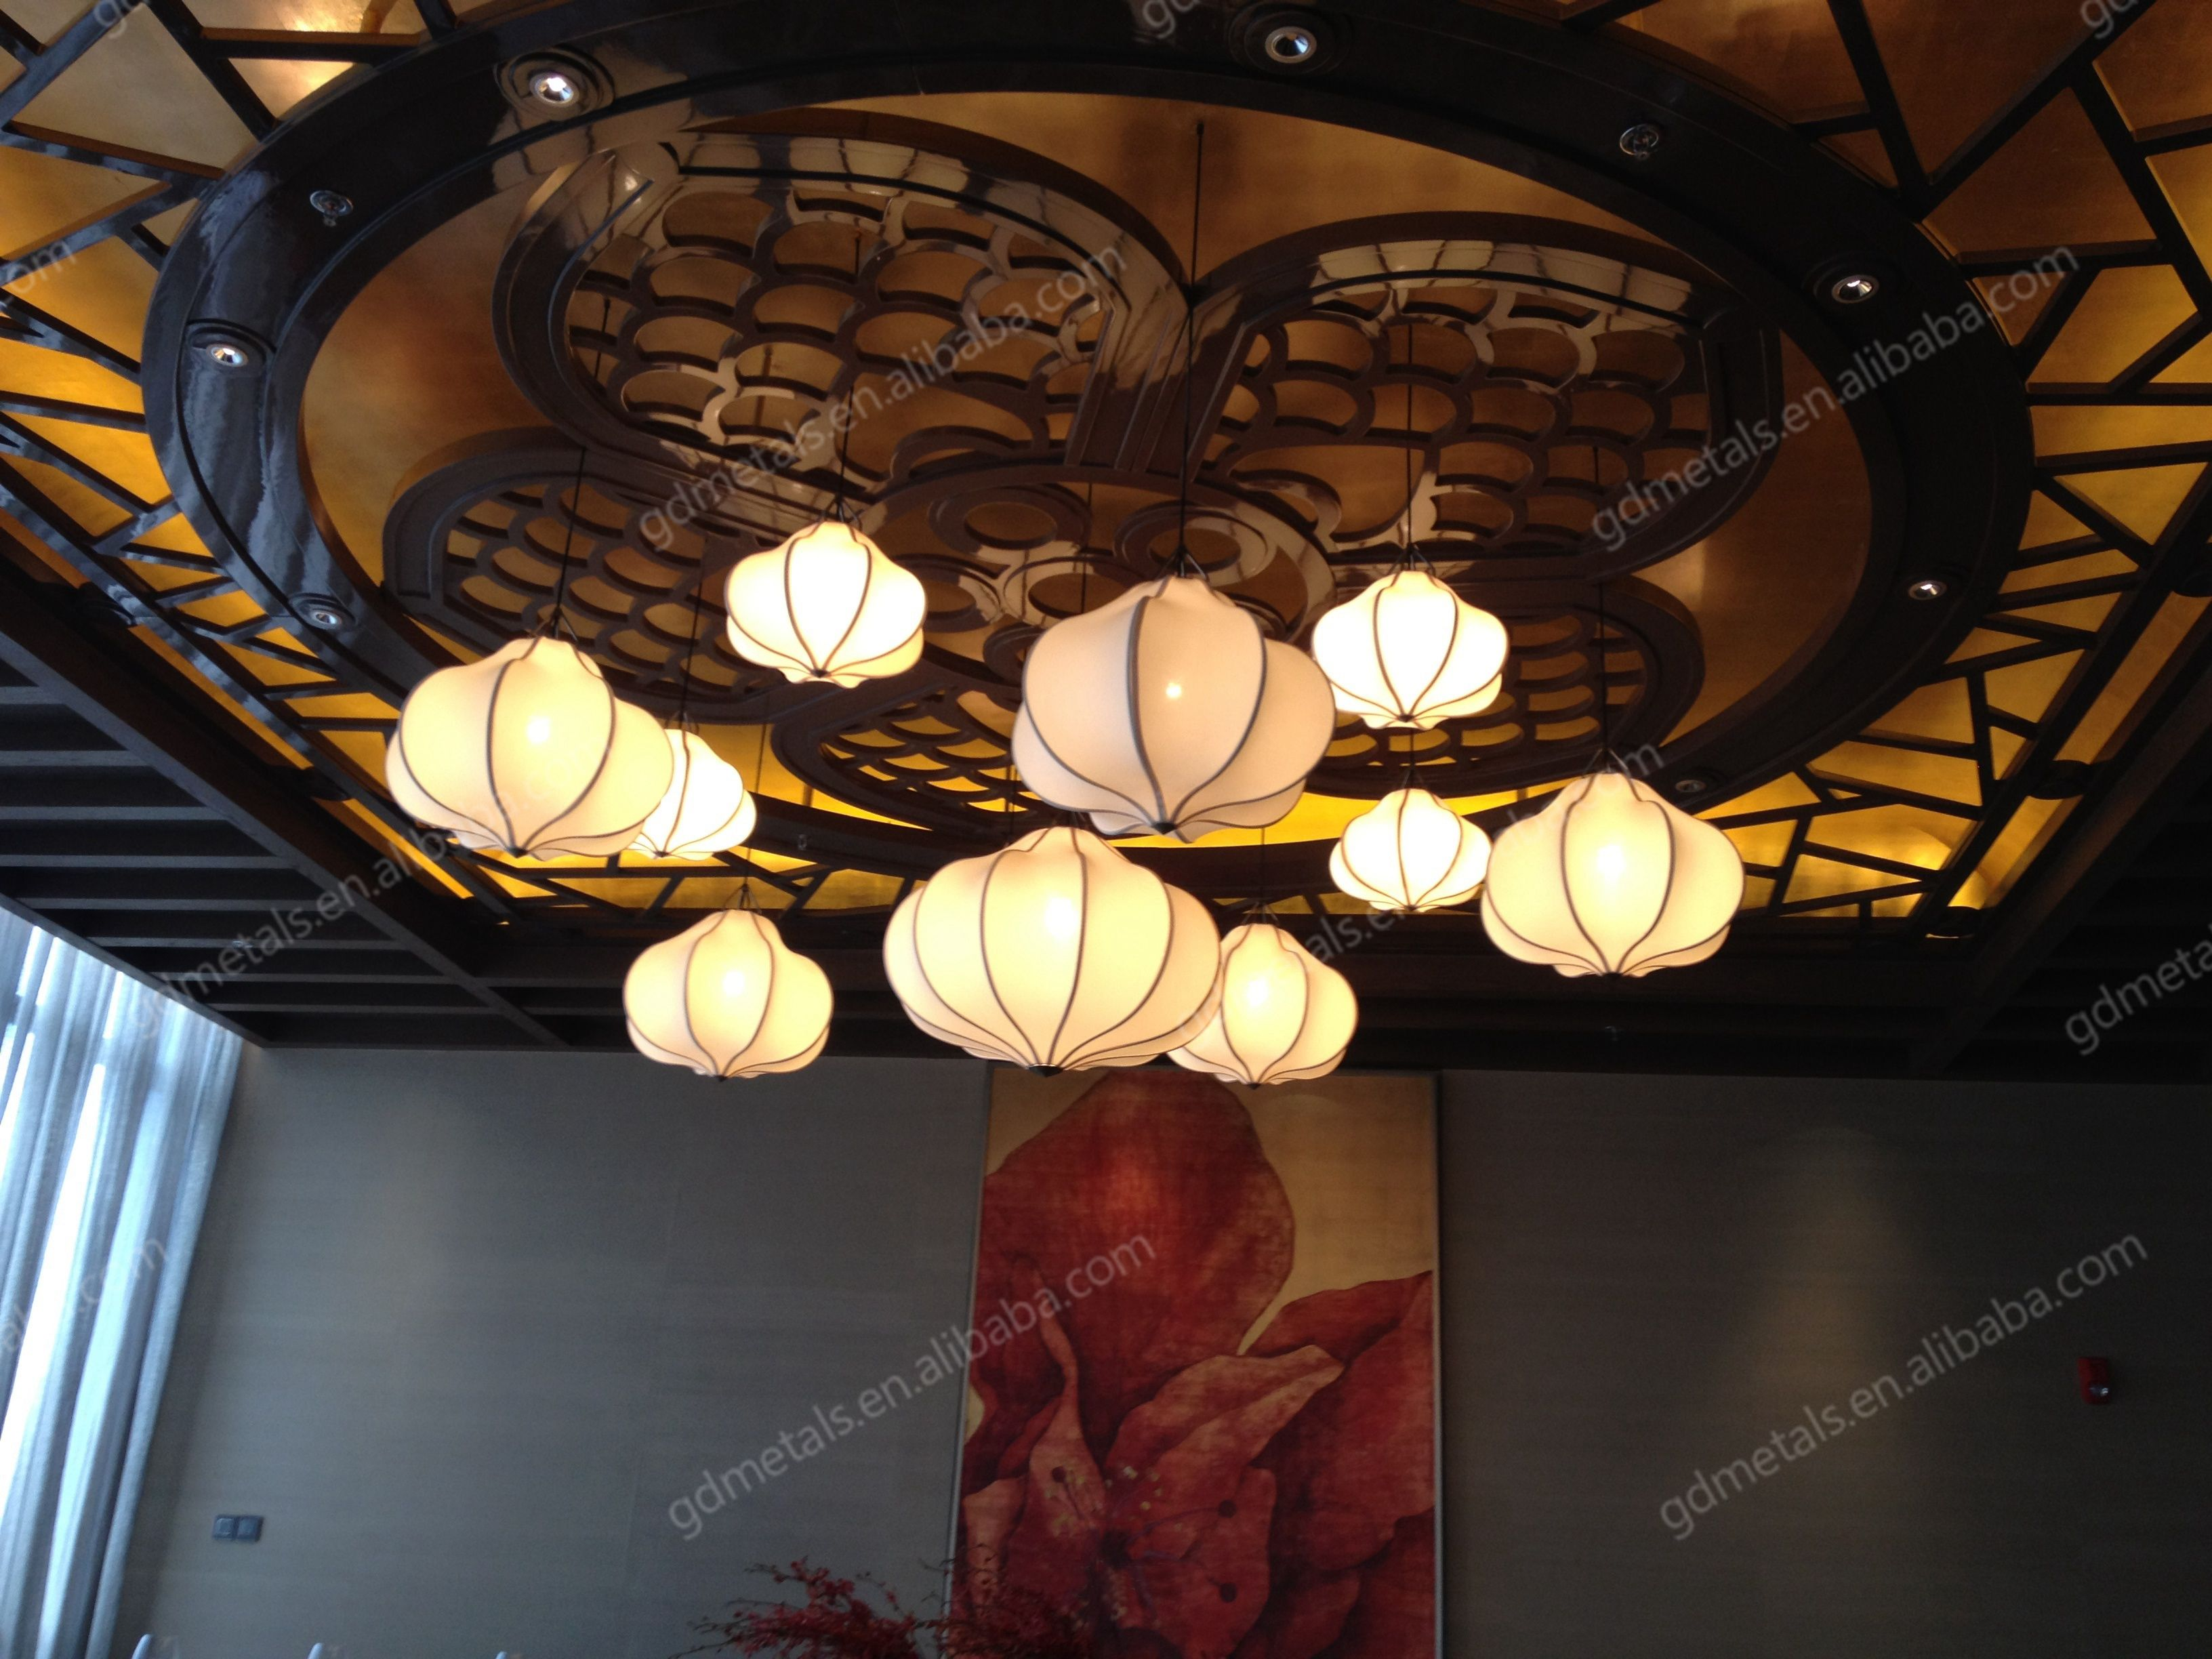 Pin By Inoxfurt Gdmetals On Project Cases Metal Ceiling Decorative Metal Screen Decorative Ceiling Panels